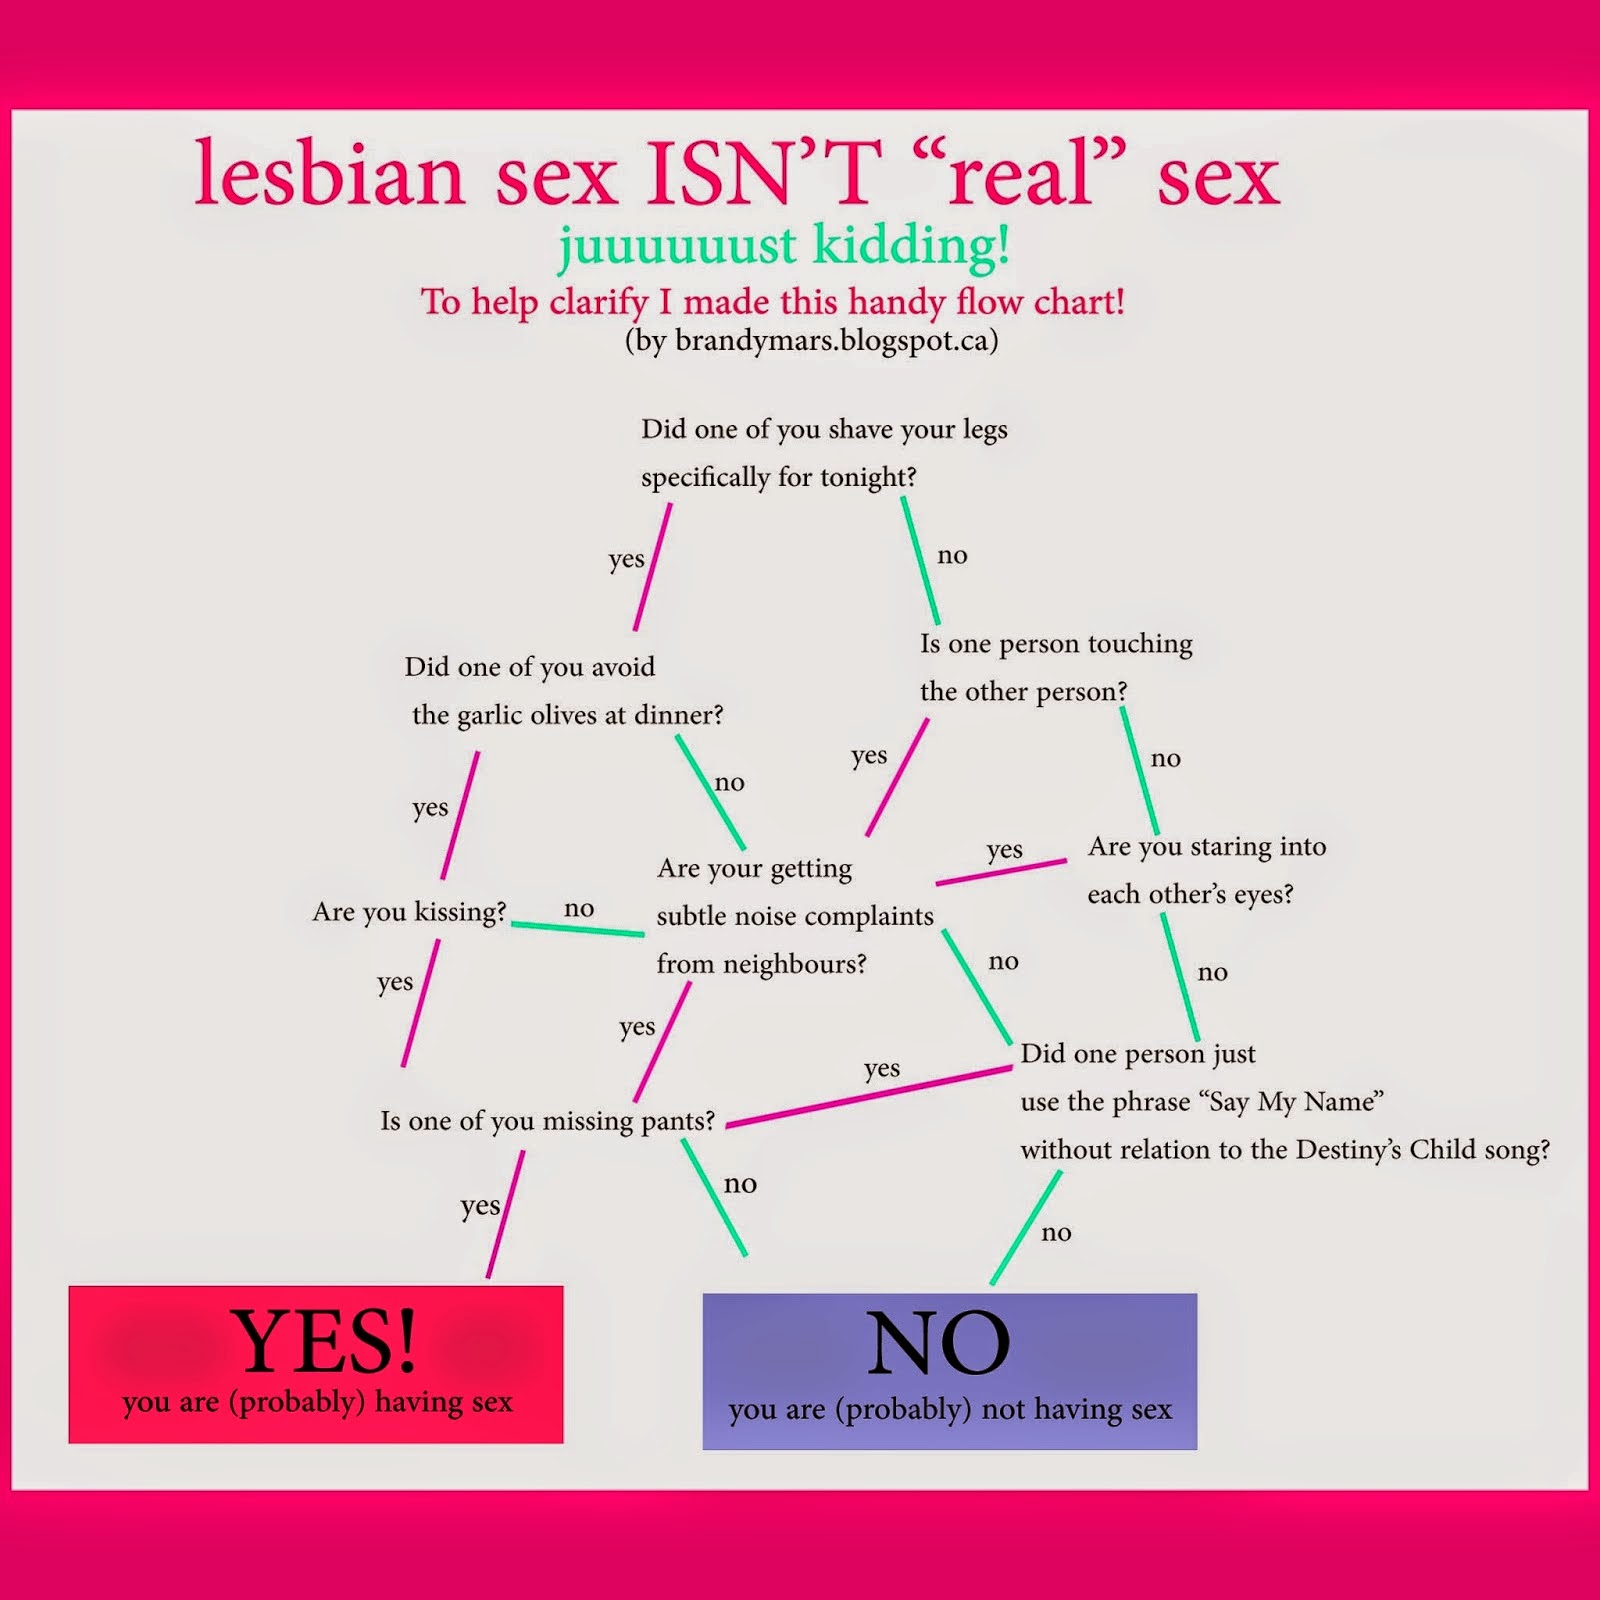 How to have lesbian sec